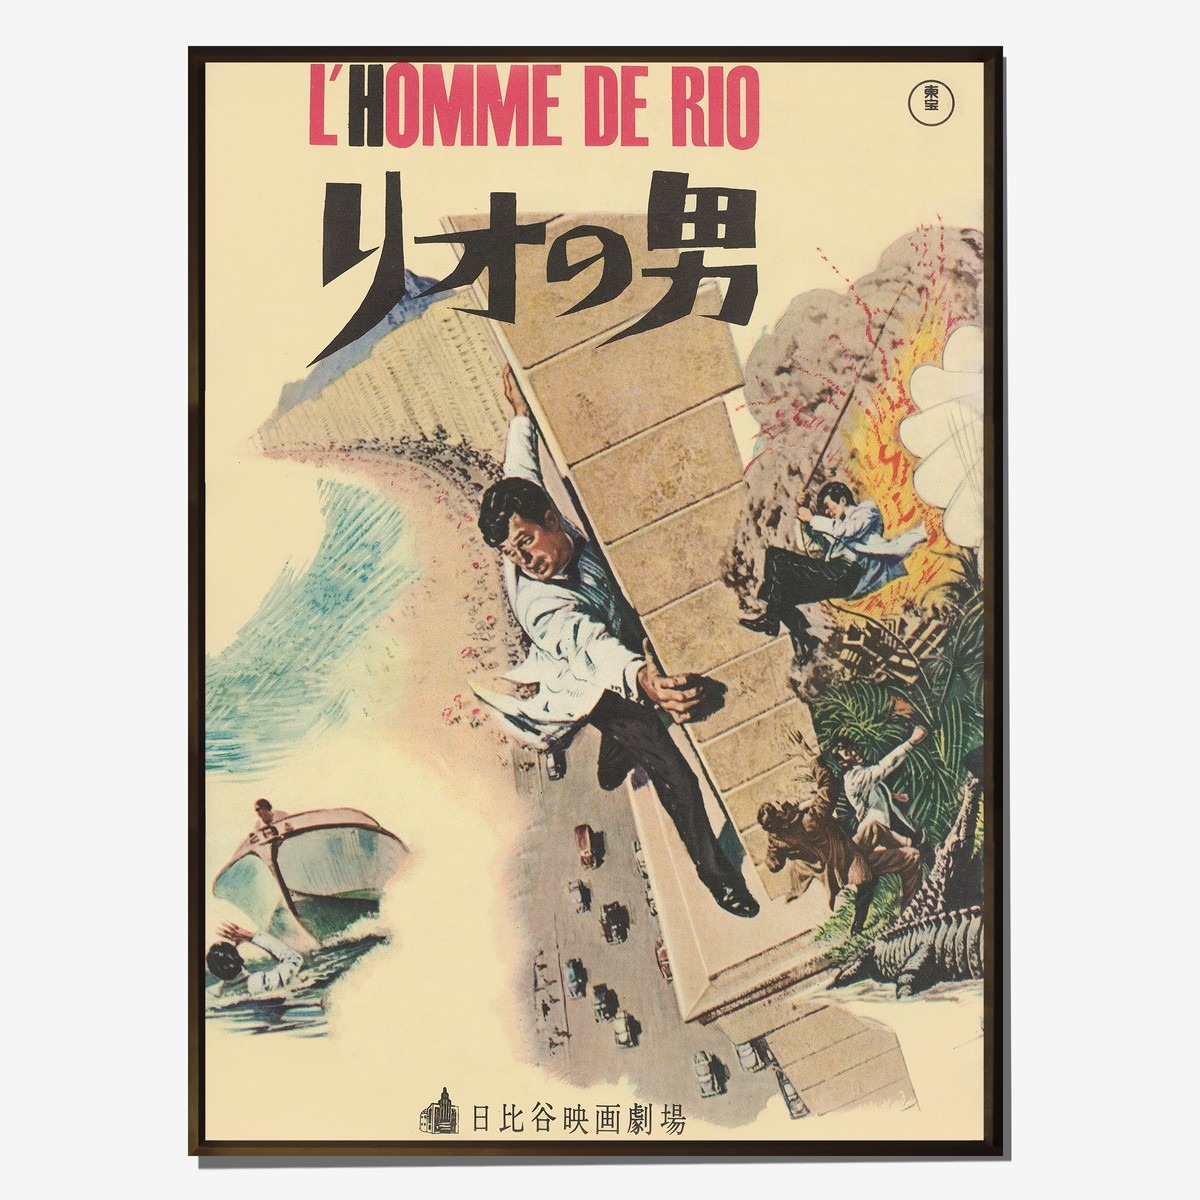 Photo of L'Homme de Rio Vintage Advertising Poster